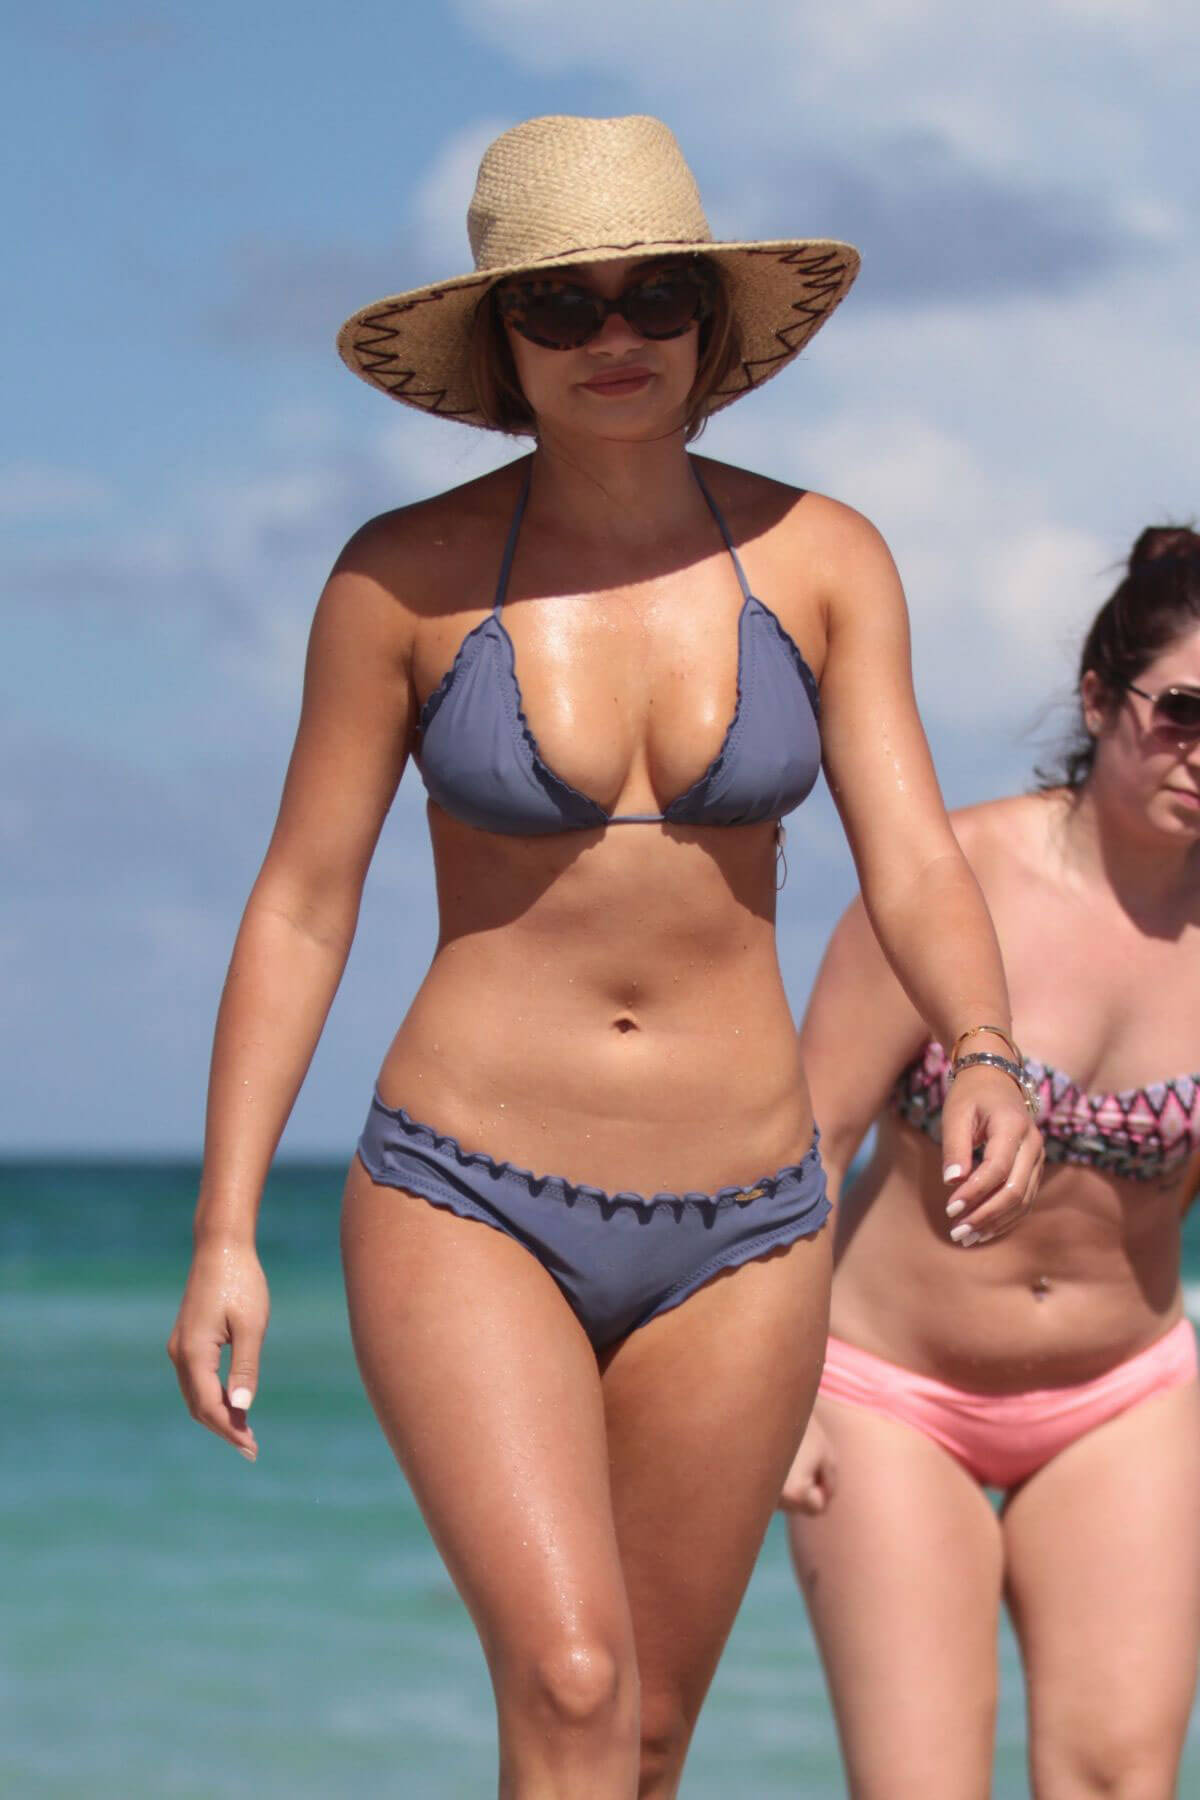 Keleigh Sperry in Bikini on the beach in Mexico Pic 26 of 35